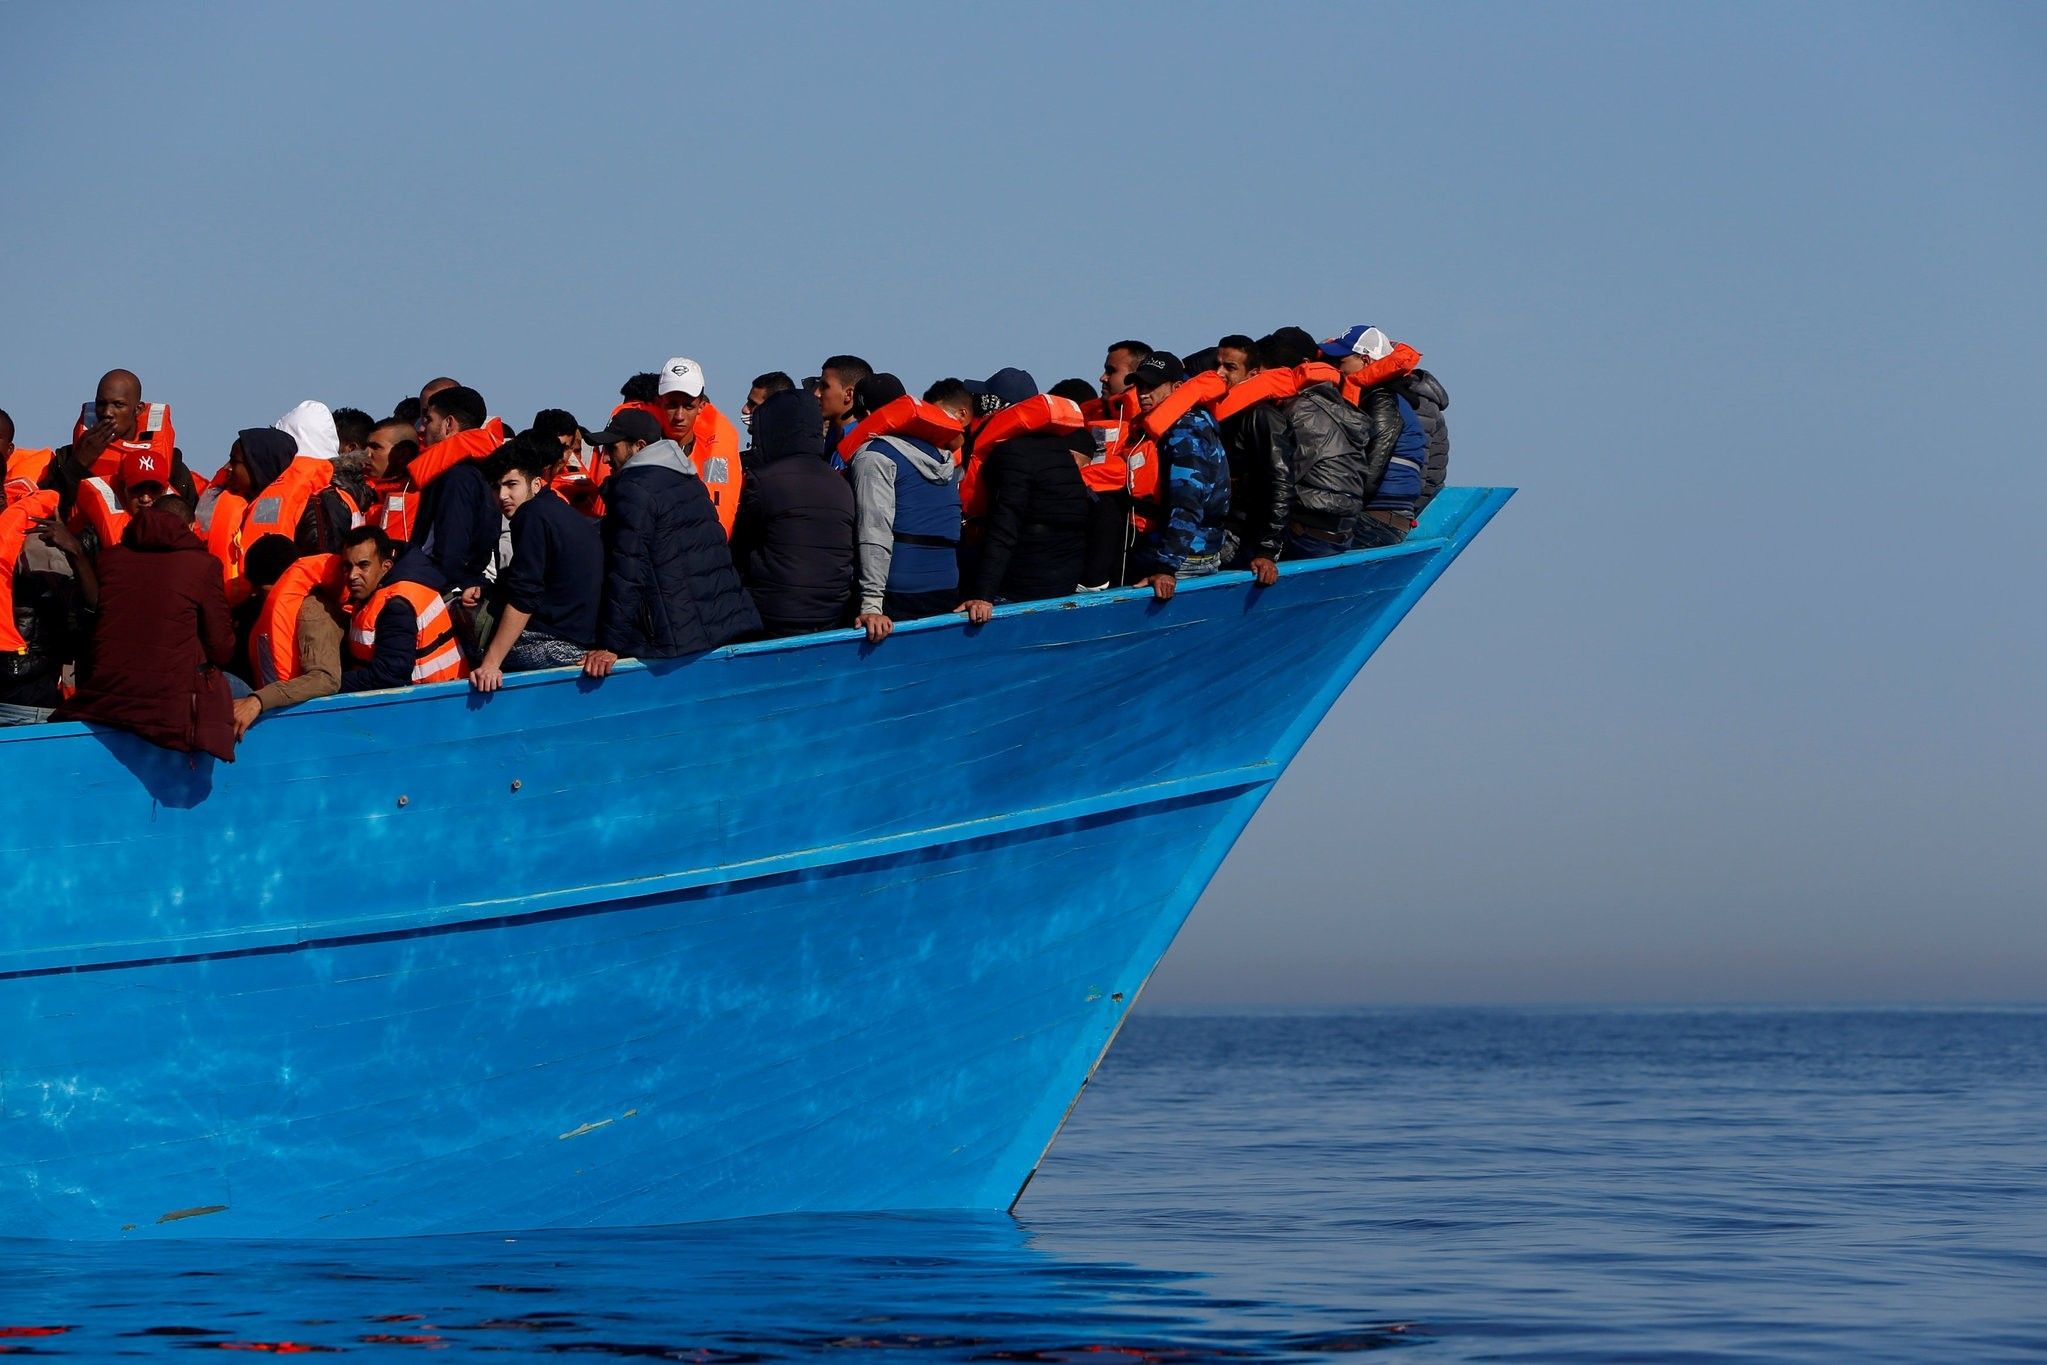 Migrants on a wooden boat await rescue by the Malta-based NGO Migrant Offshore Aid Station (MOAS) in the central Mediterranean in international waters off the coast of Sabratha in Libya, April 15, 2017 (Reuters File Photo)